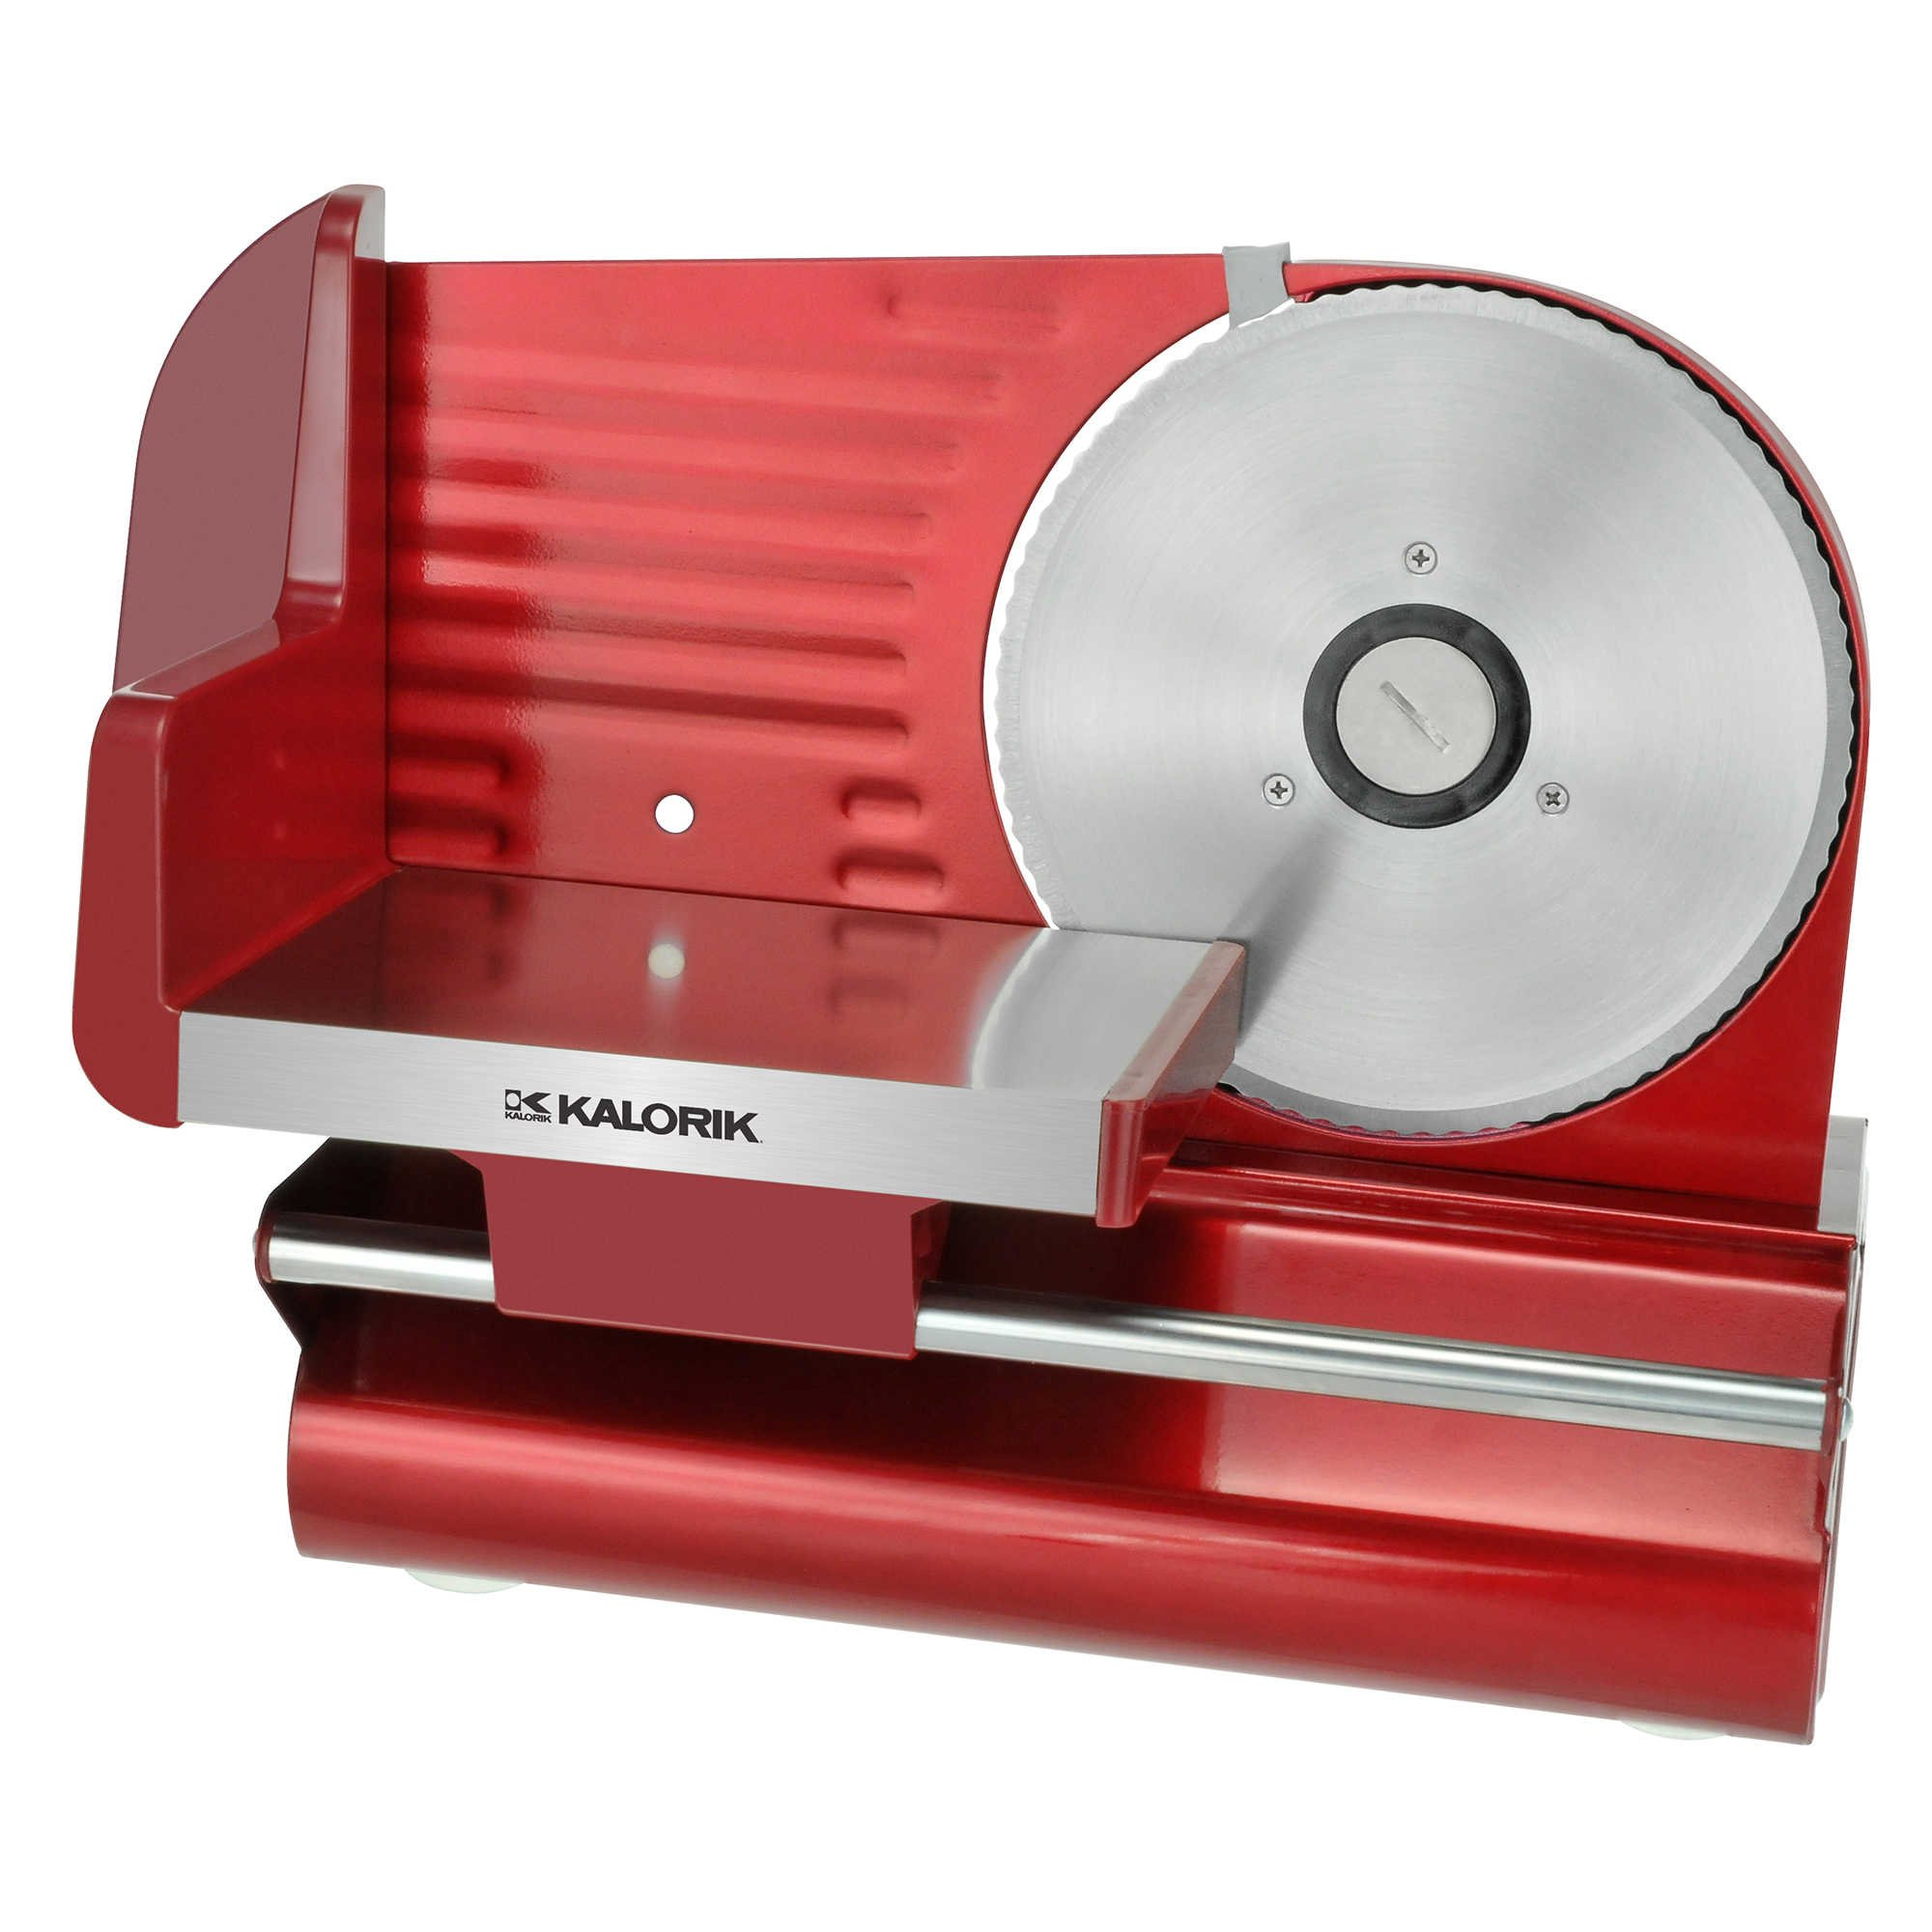 Kalorik Electric Food Slicer for Home Use in Red